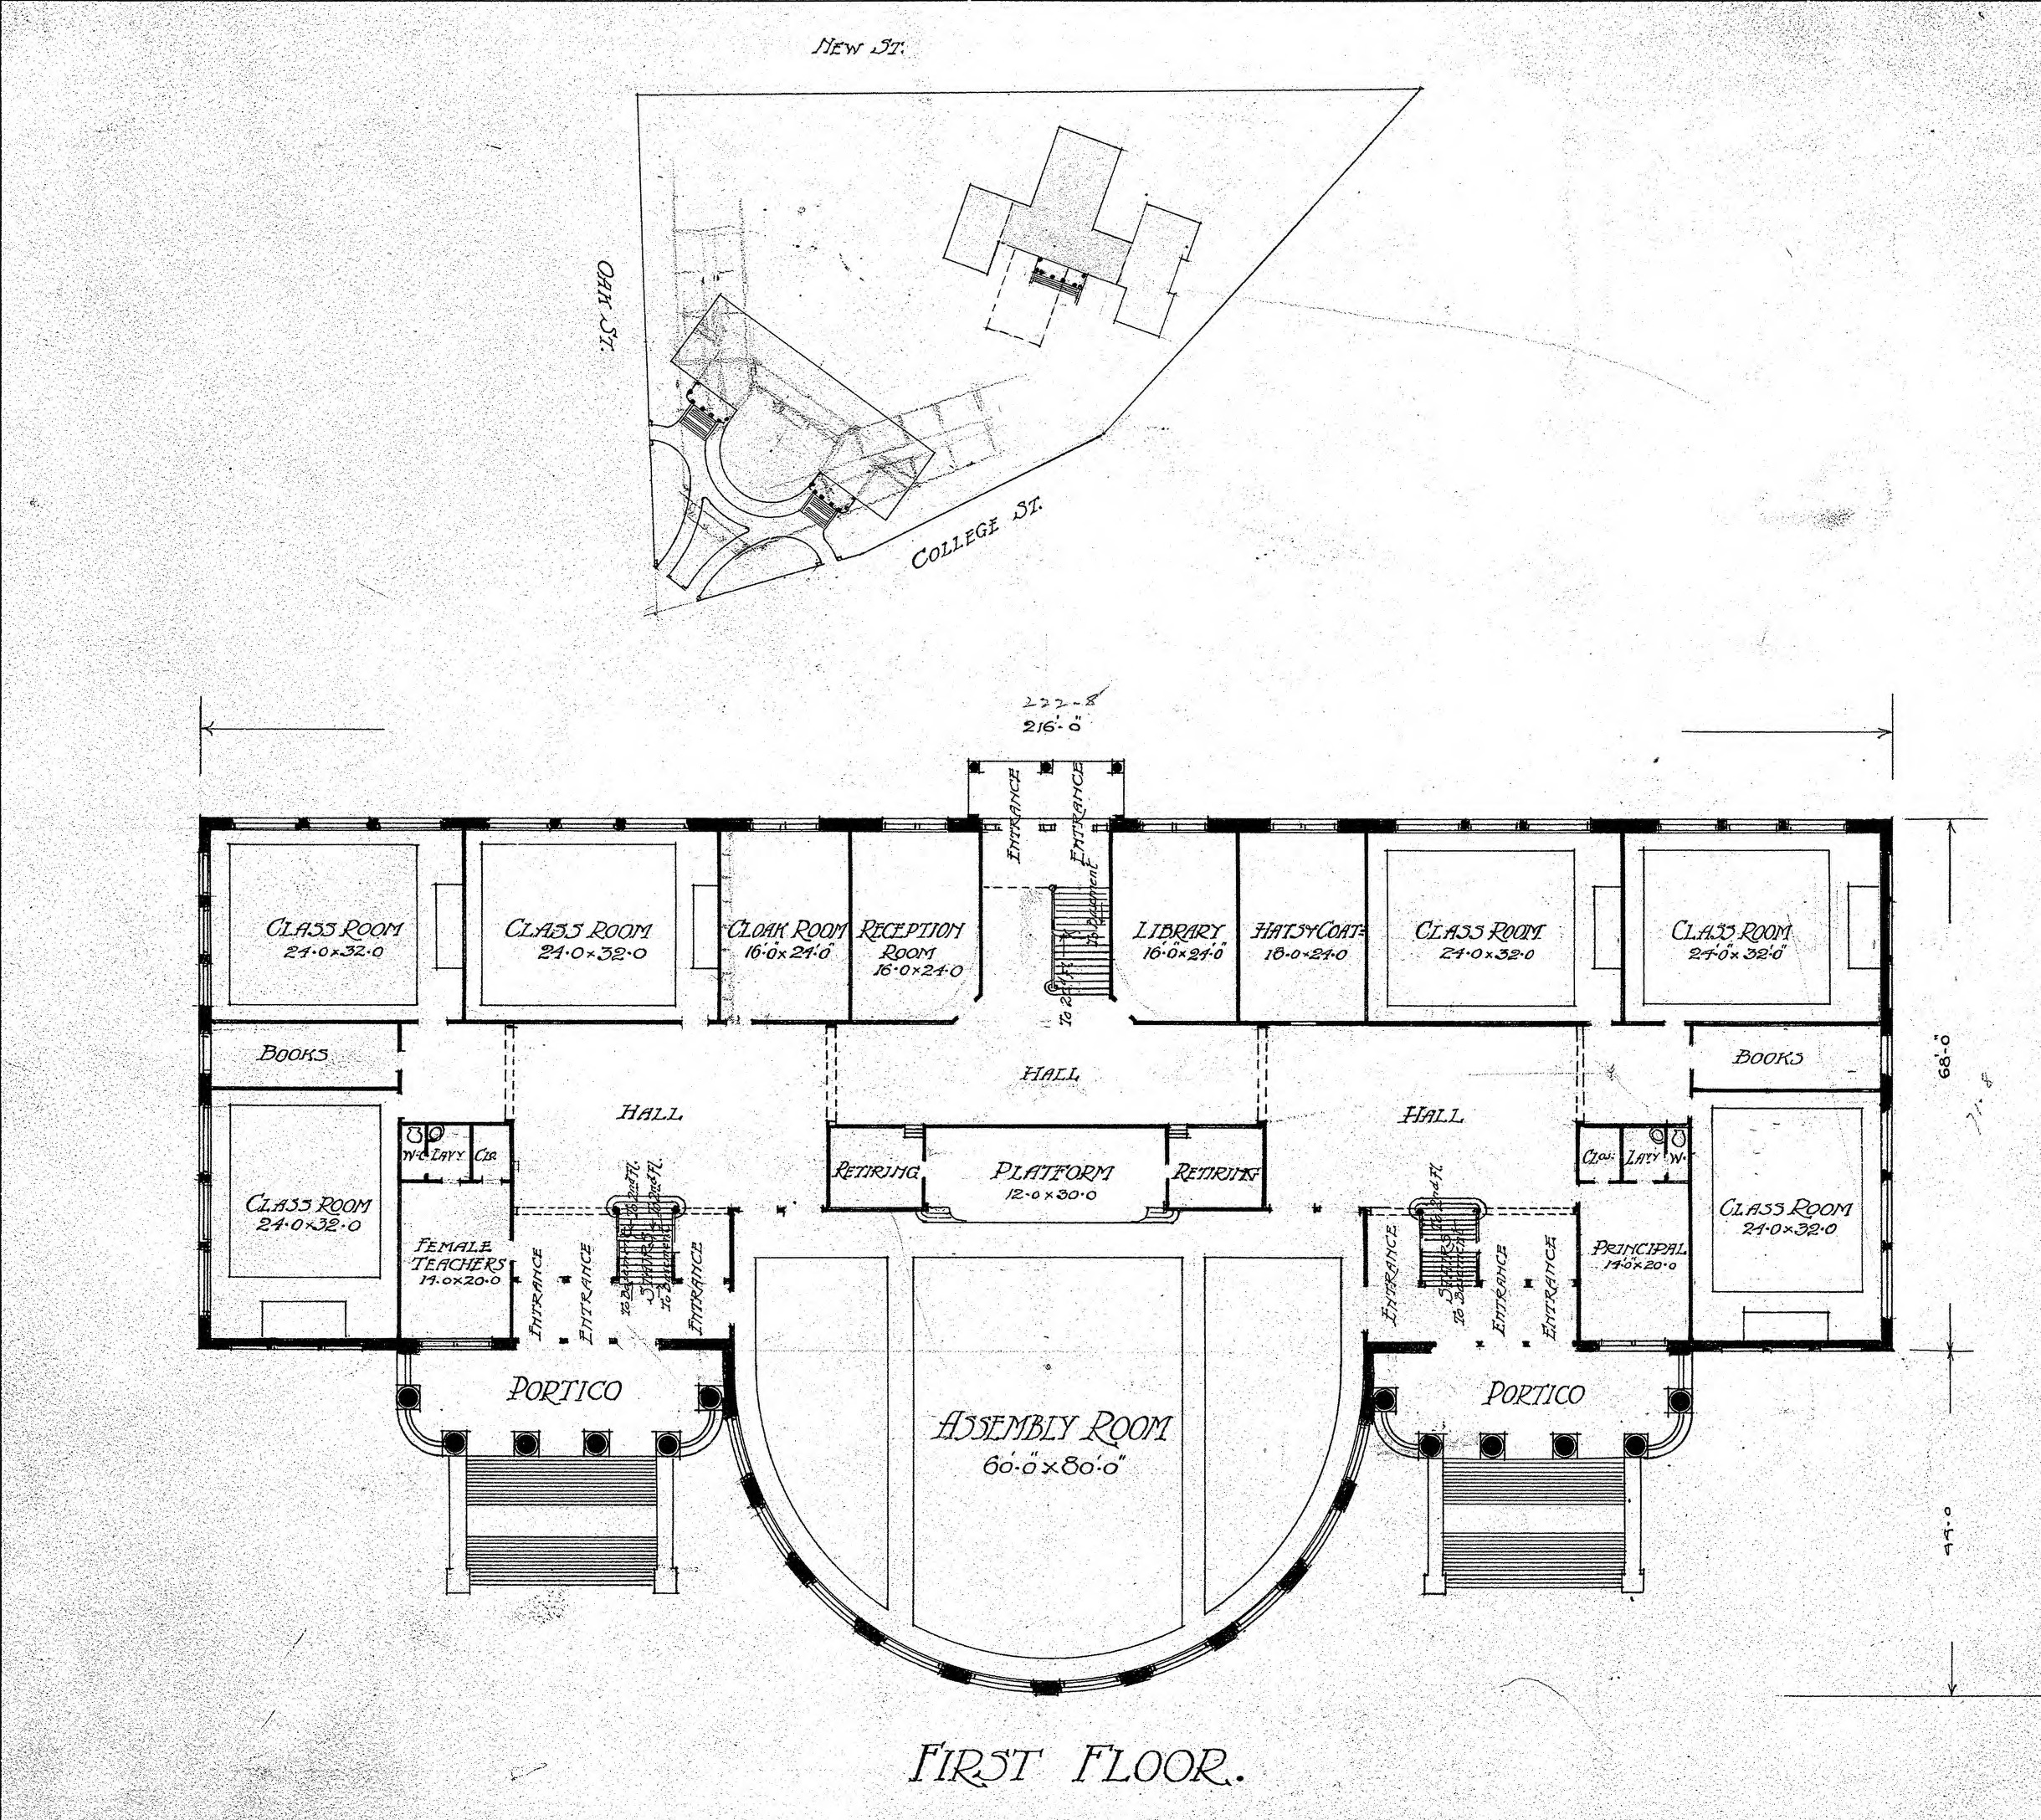 The Latest Service Planned For School Shooti: First Floor- Rd Plan